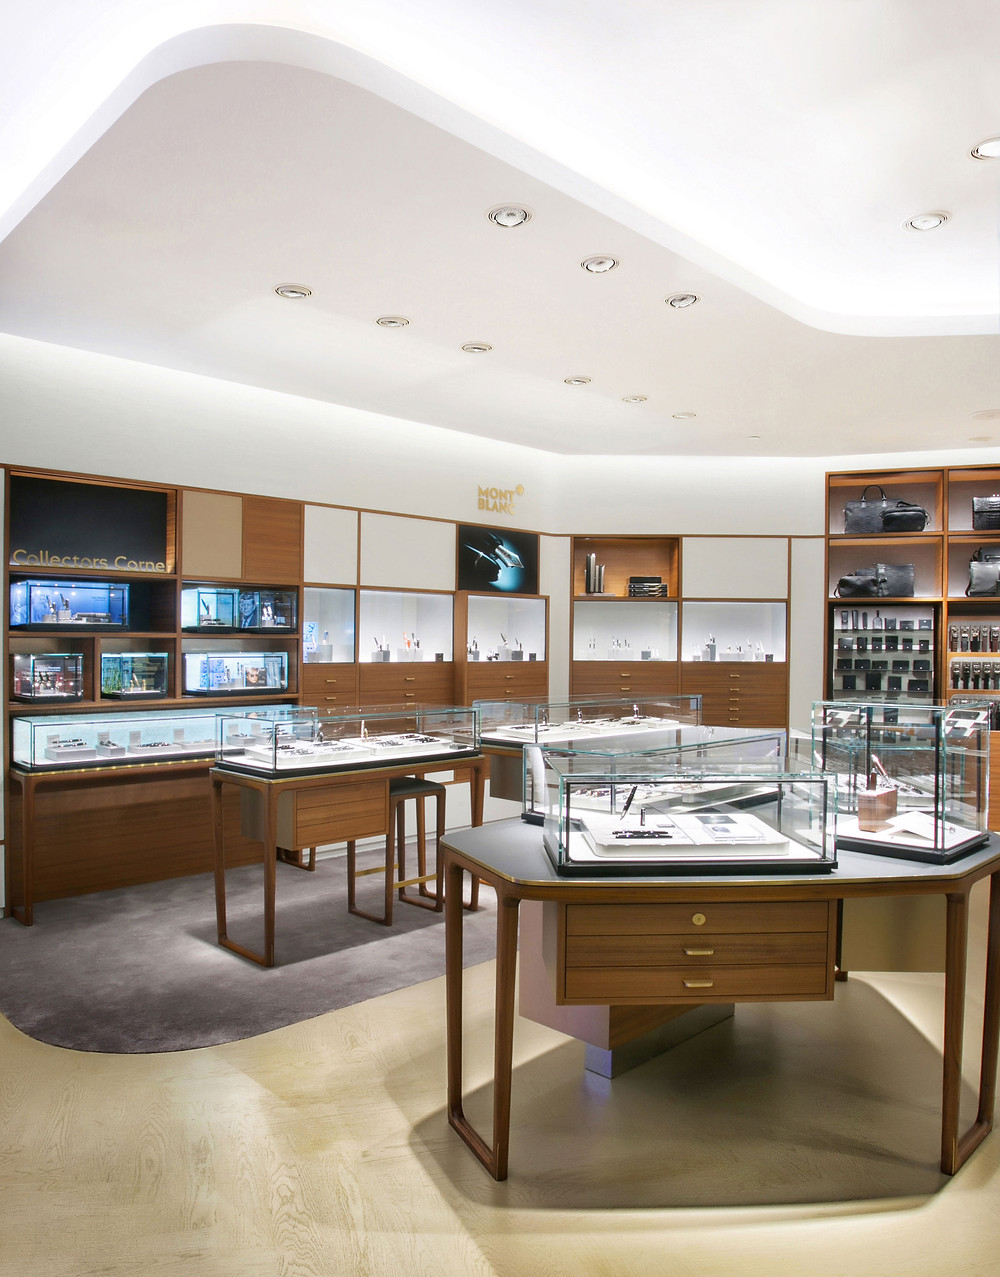 Montblanc New Boutique Concept at Suria KLCC Mall